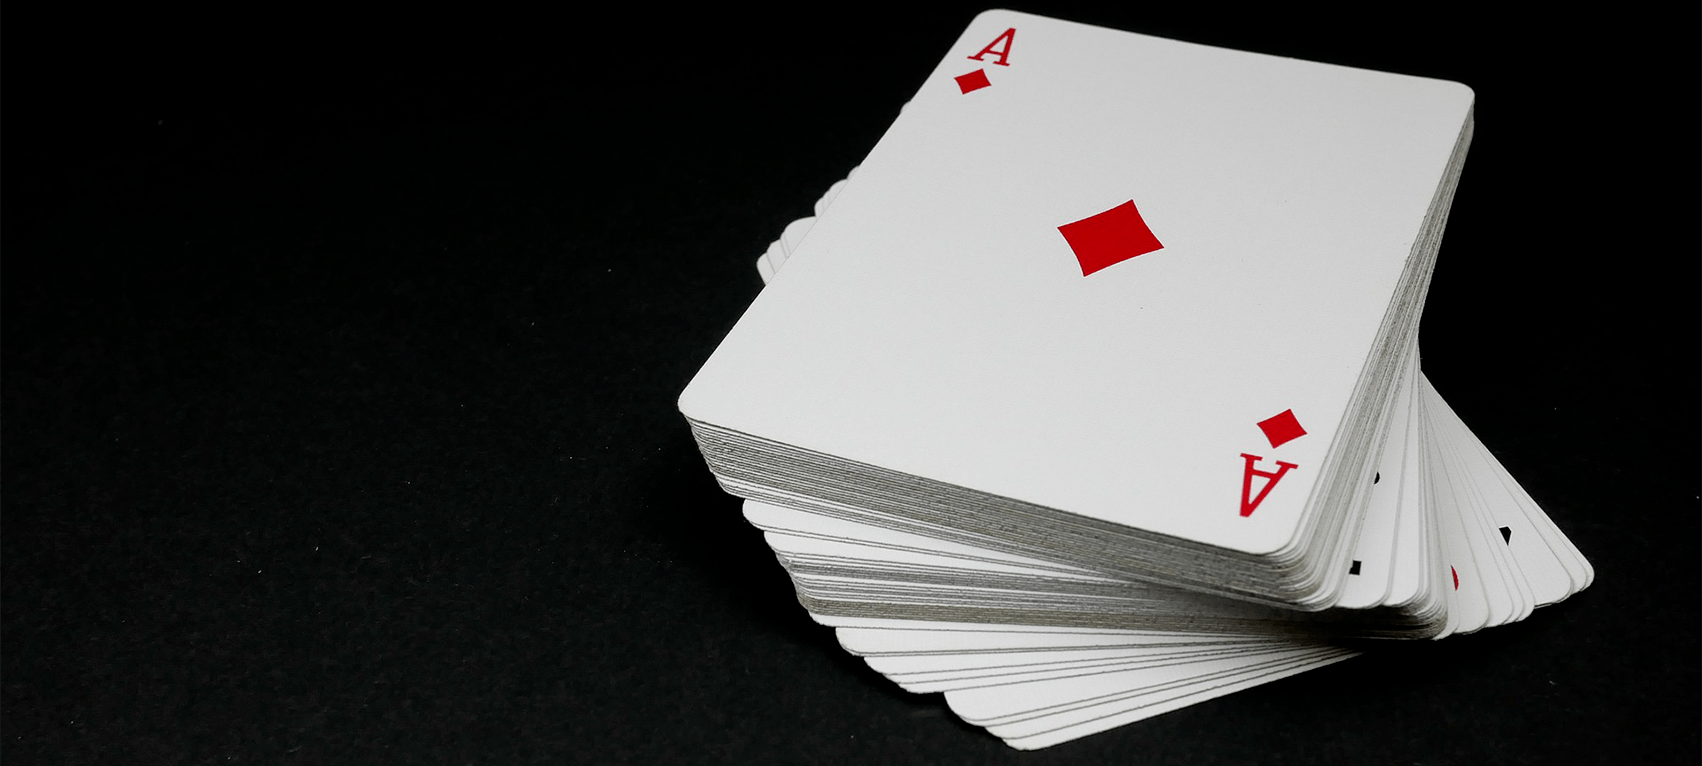 https://www.gambleonline.co/app/uploads/2021/02/pile-of-playing-cards-ace-of-diamonds-on-top-1.png